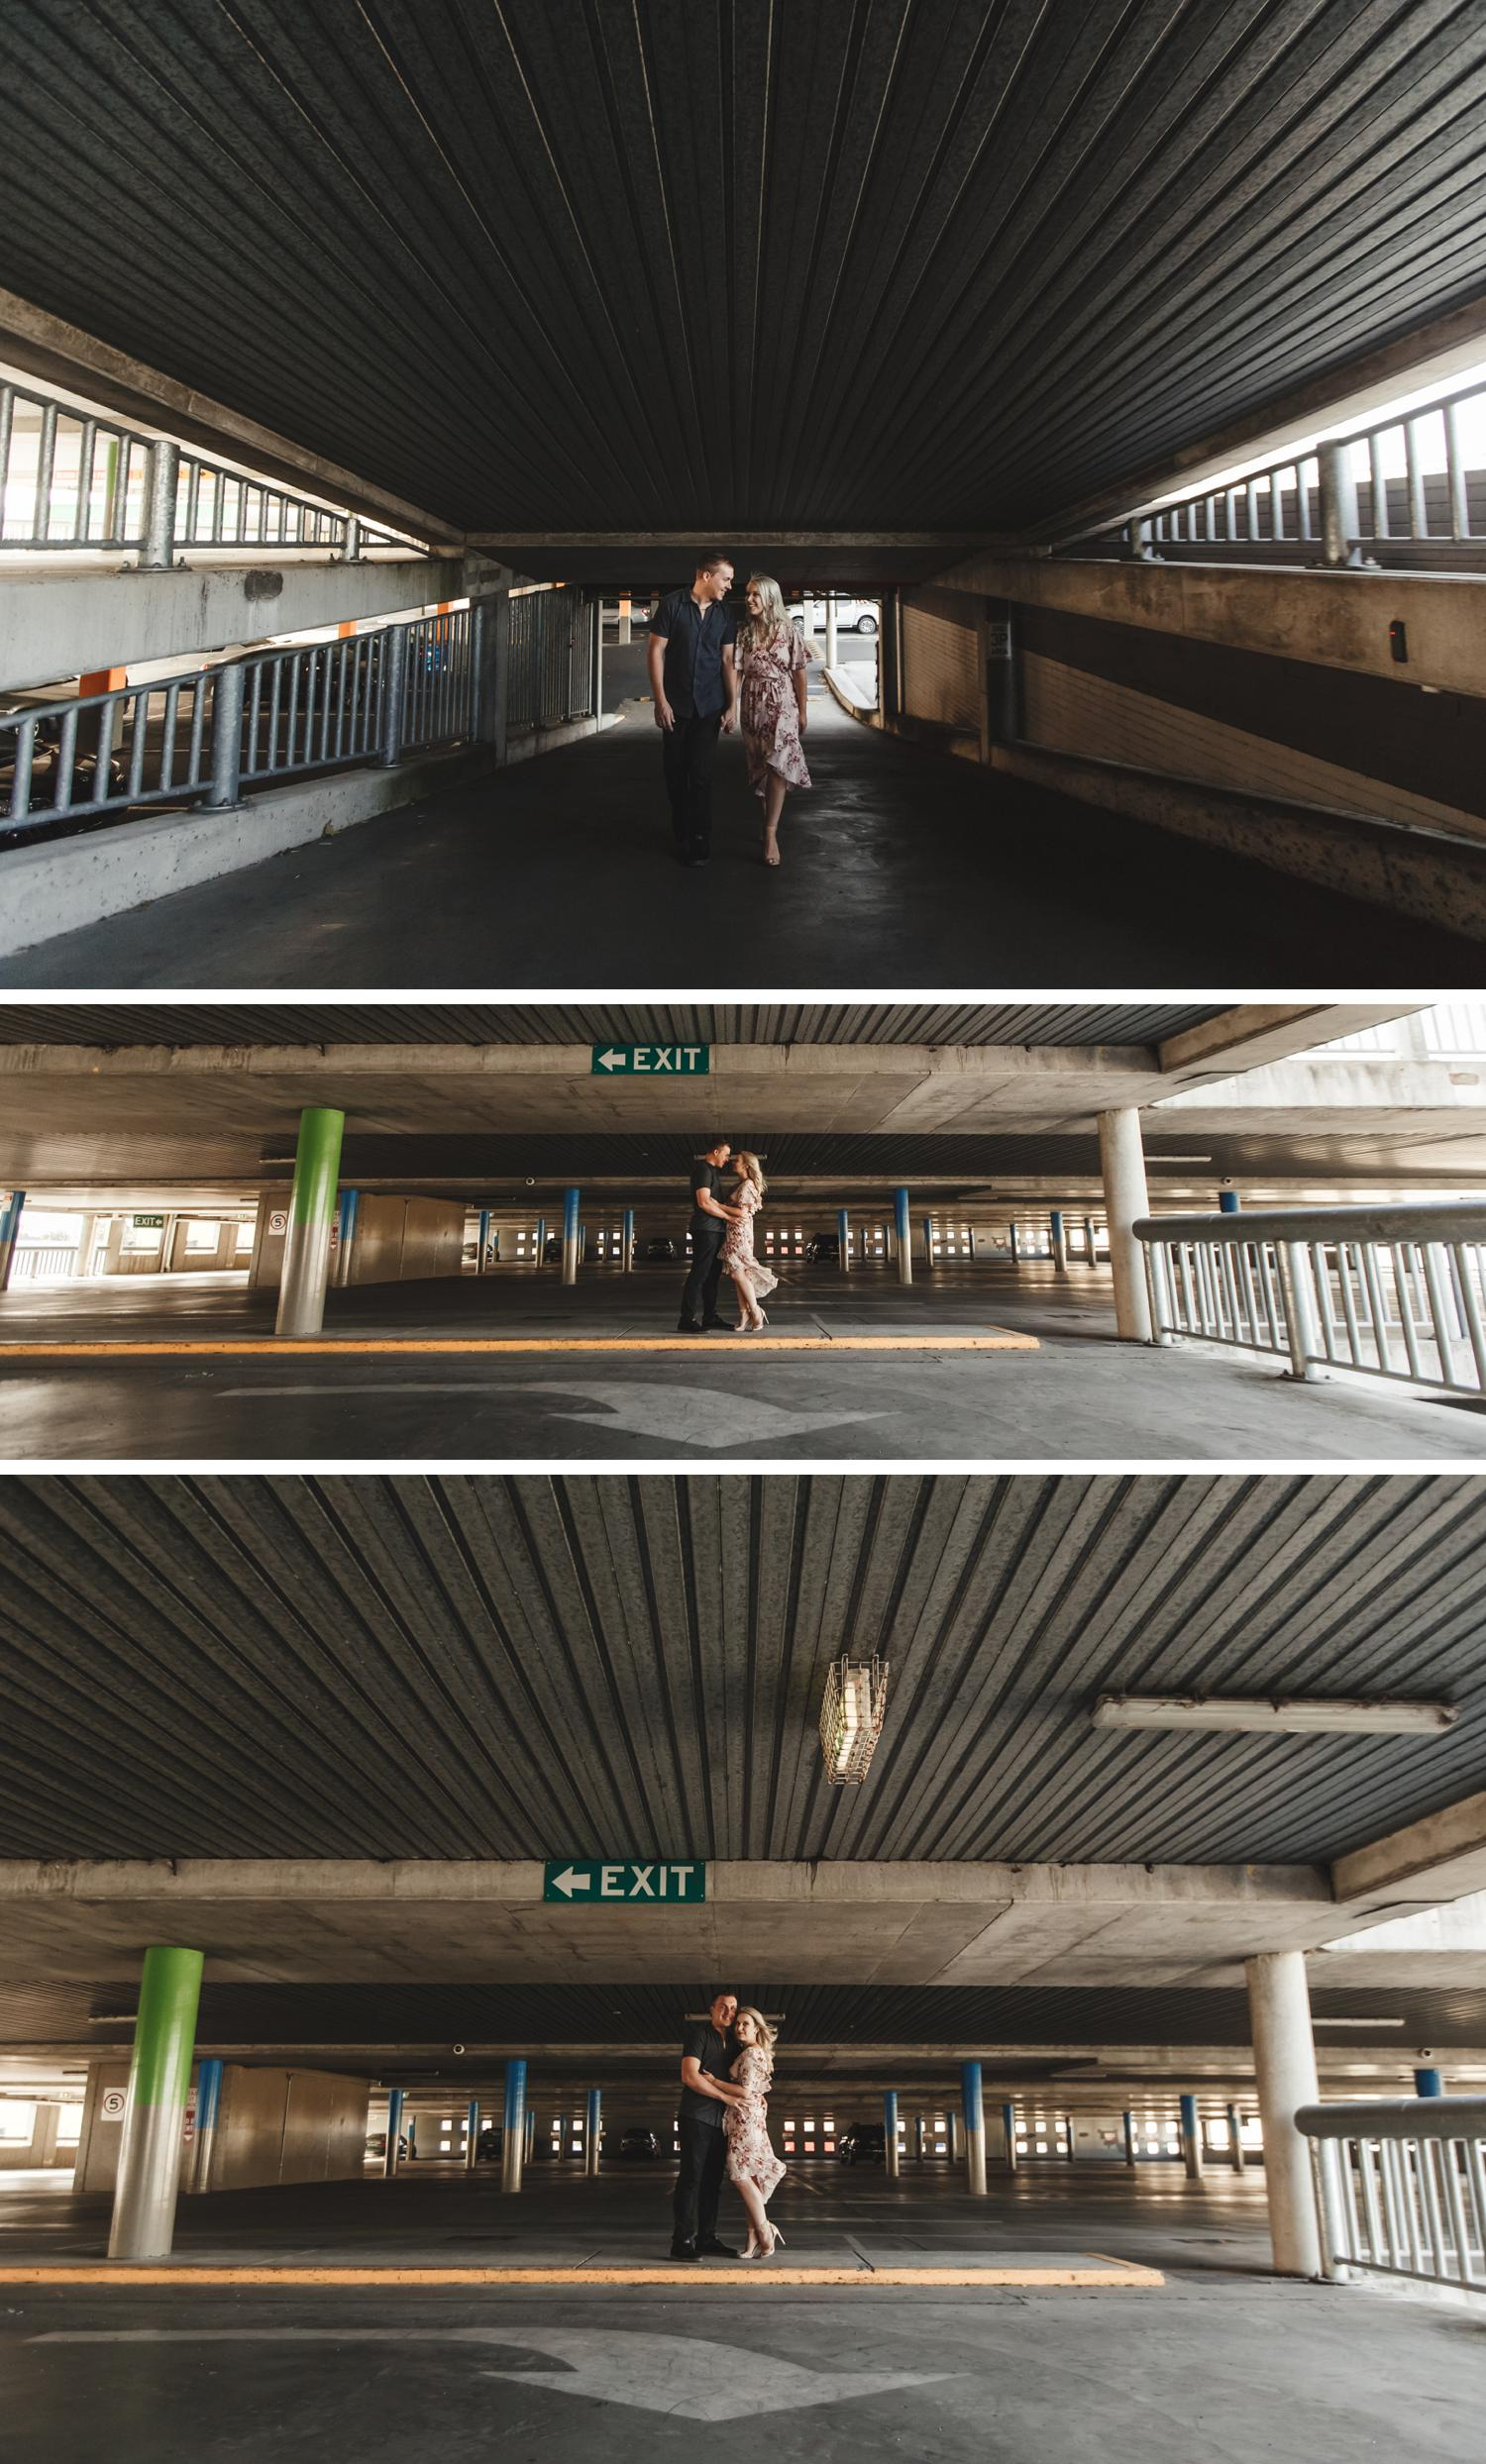 Couple Embracing Car Park Engagement Shoot, Wide Angle Shot of Bride and Groom Embracing by Danae Studios